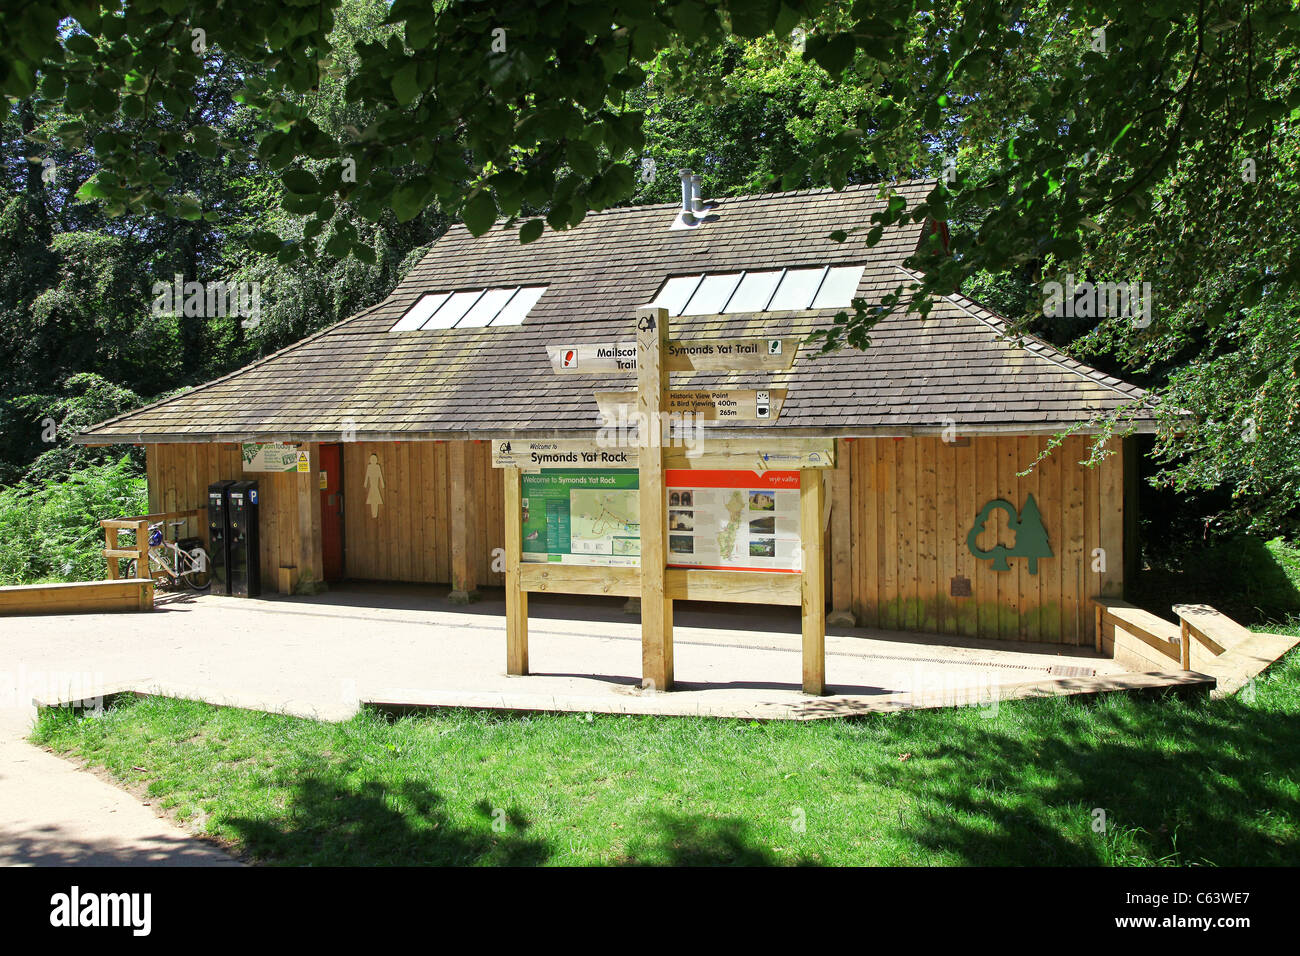 The wooden building of the toilet block at Symonds Yat rock, Herefordshire, England, UK - Stock Image